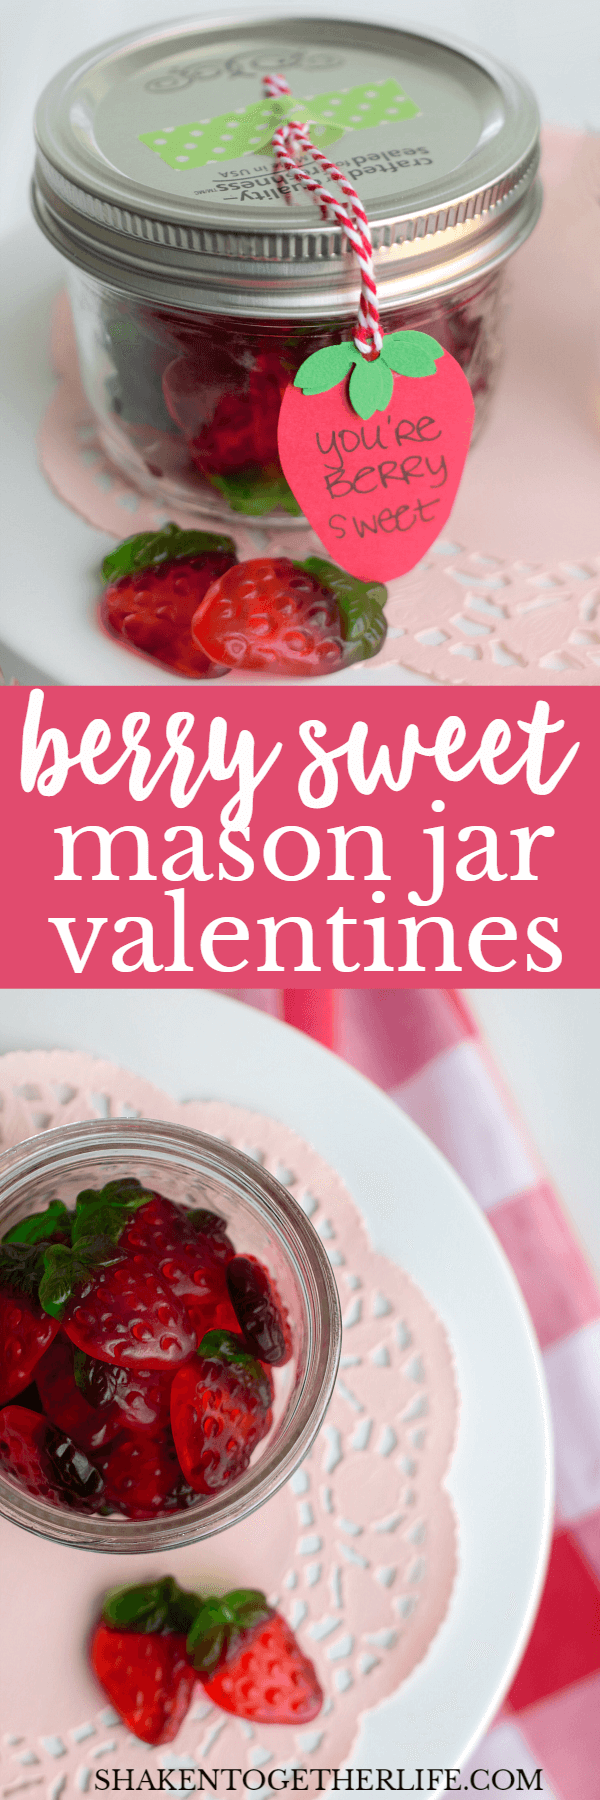 Berry Sweet Mason Jar Valentines are perfect for teachers and pals! Fill a mason jar with gummy strawberries, strawberry fruit snacks or even a batch of homemade strawberry jam!